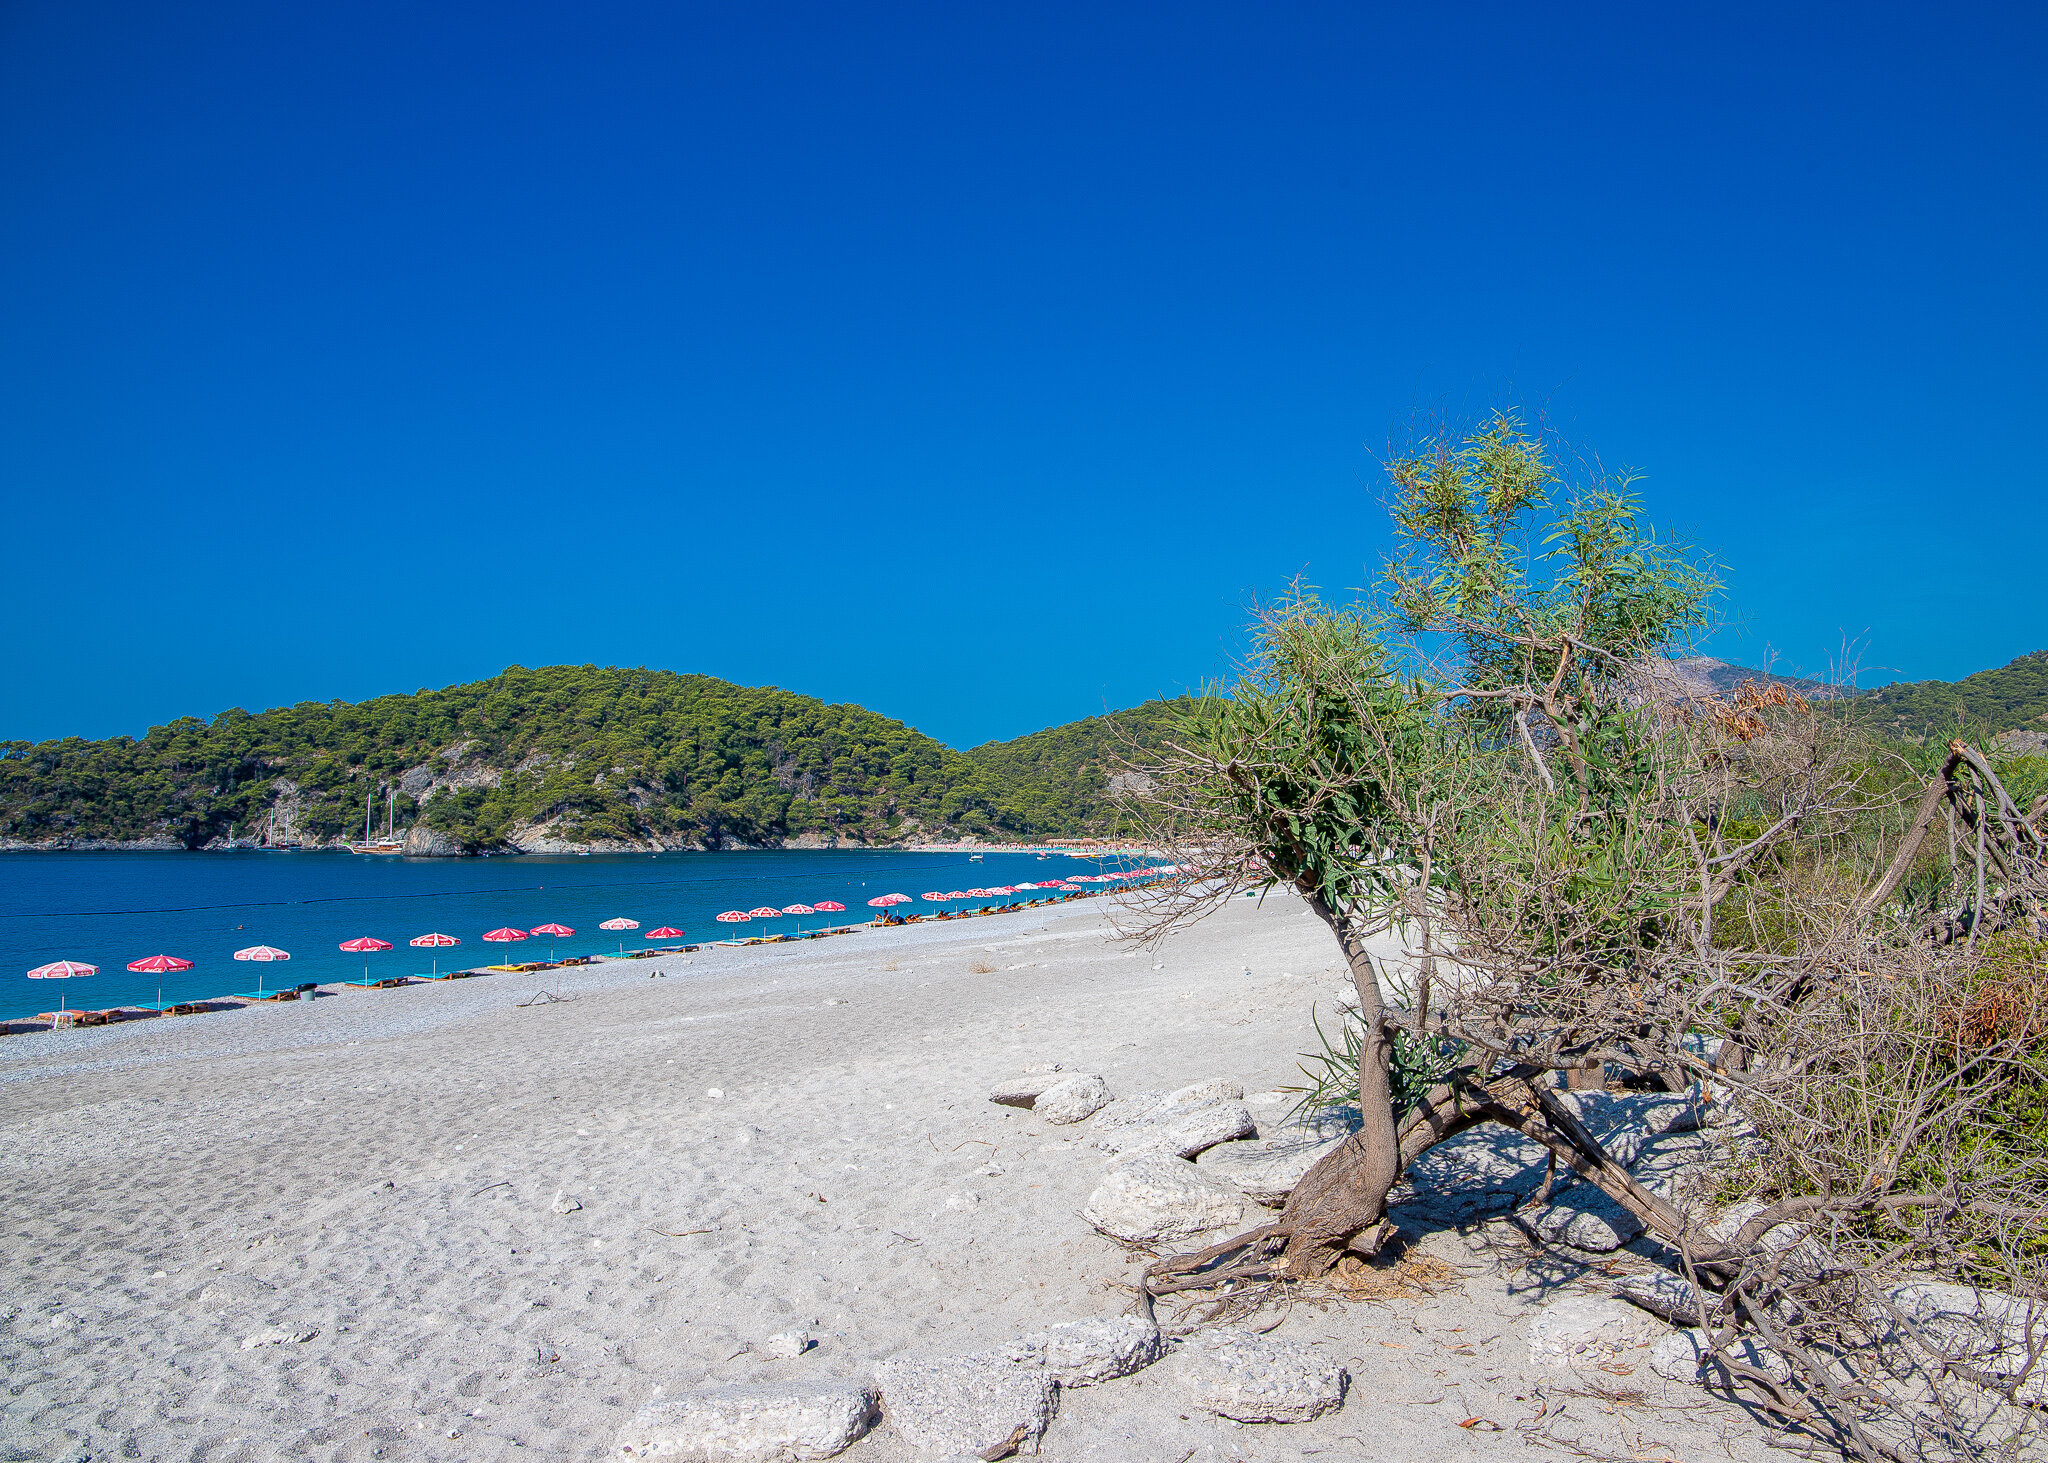 Oludeniz Beach early in the morning sans tourists